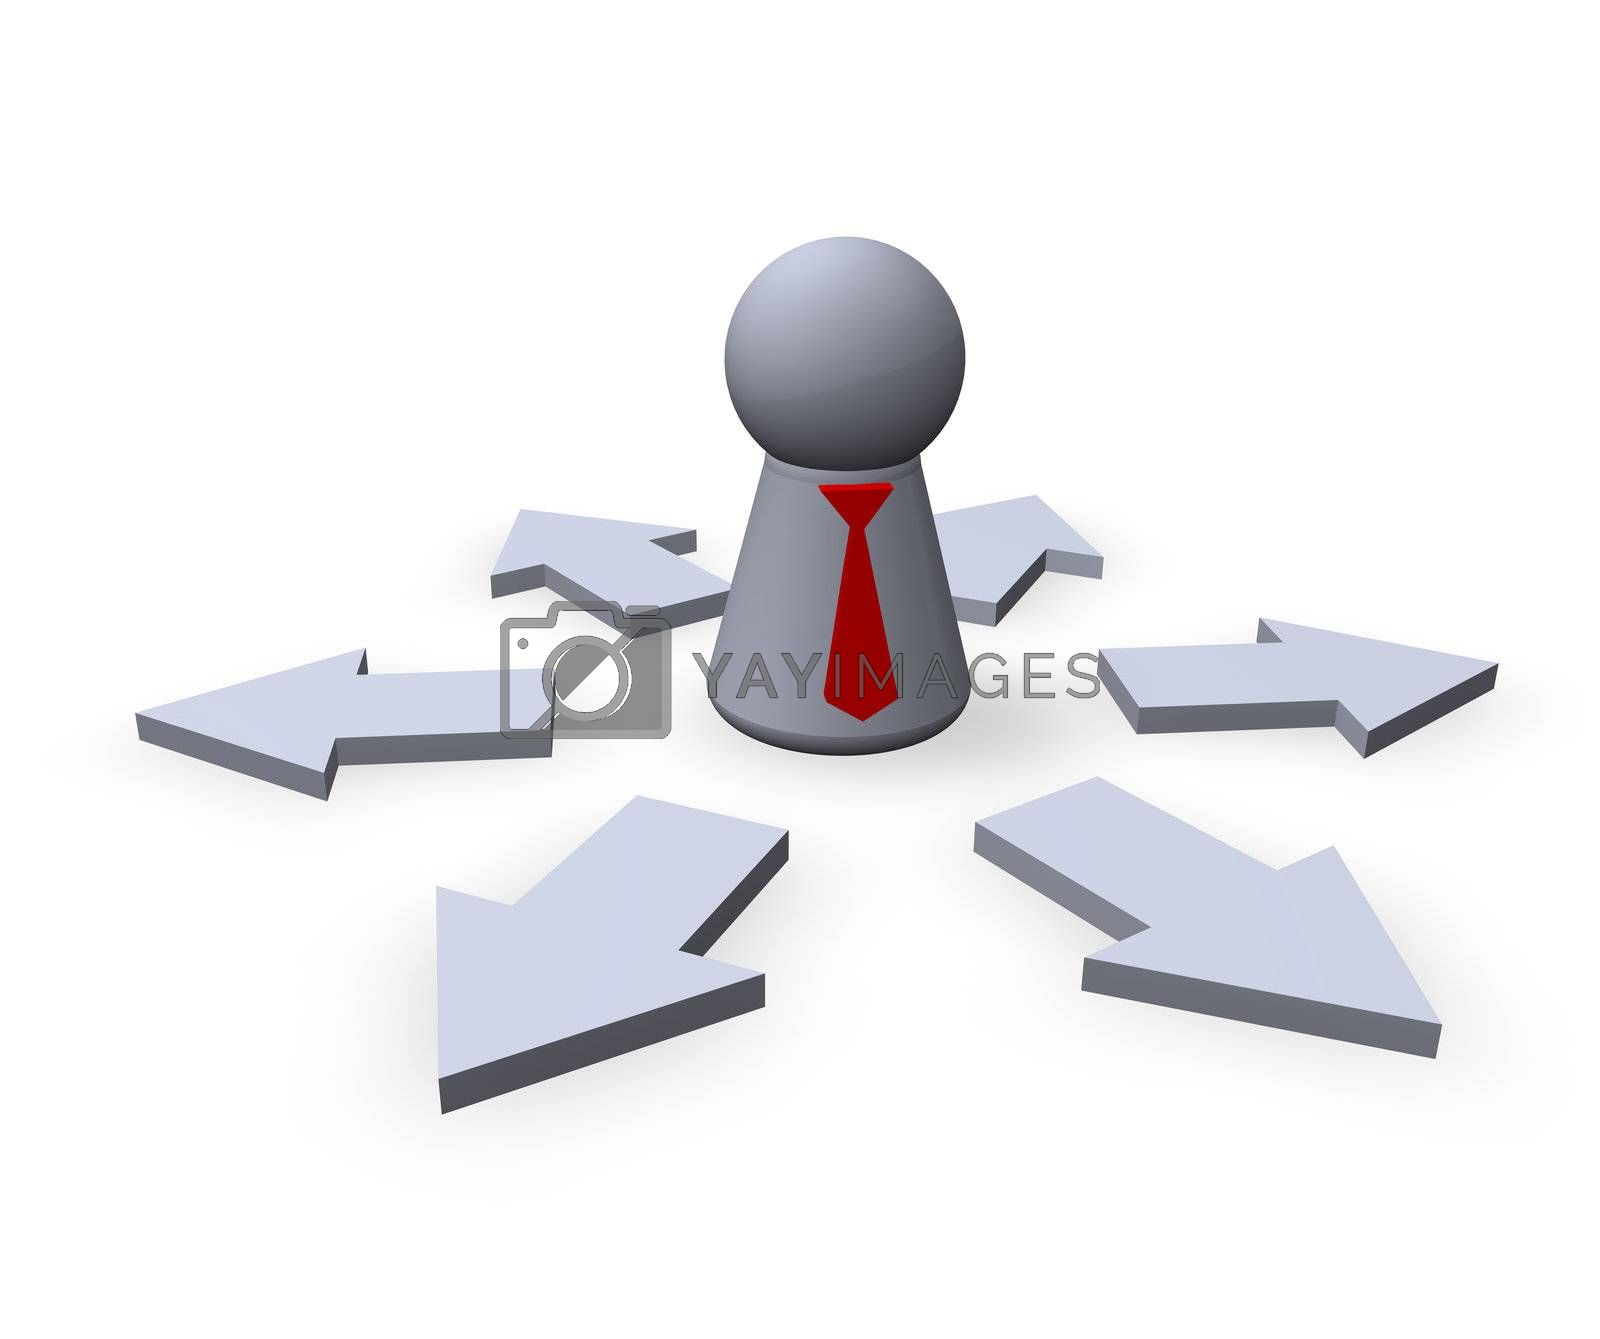 play figure businessman with red tie and pointers